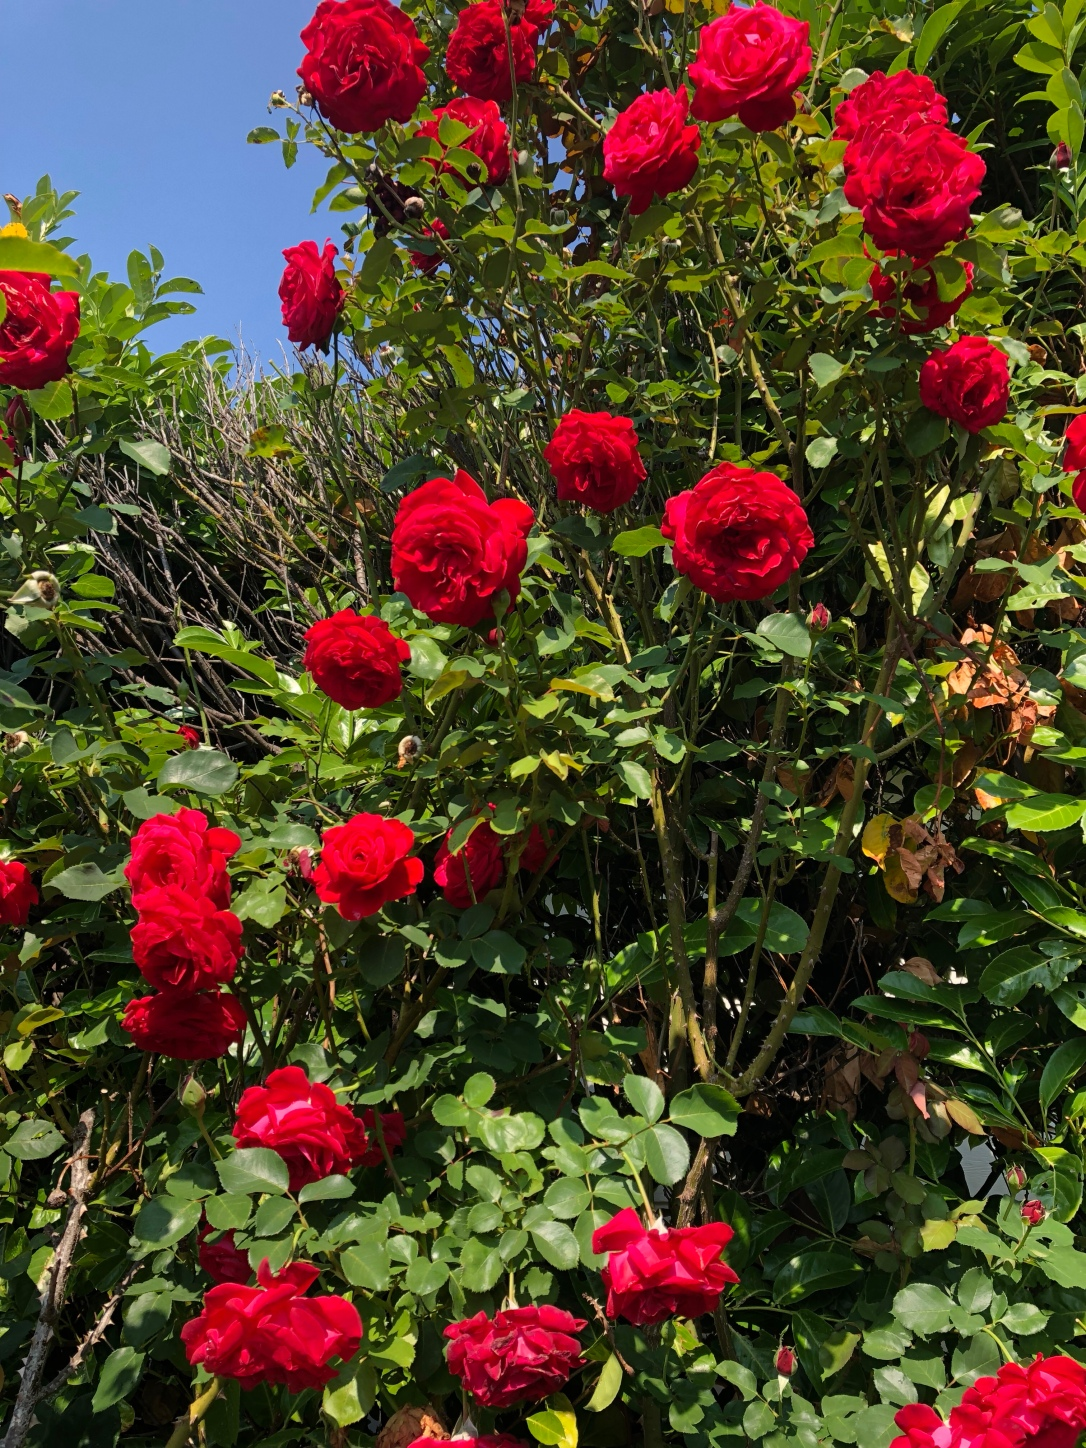 Red roses against a blue sky